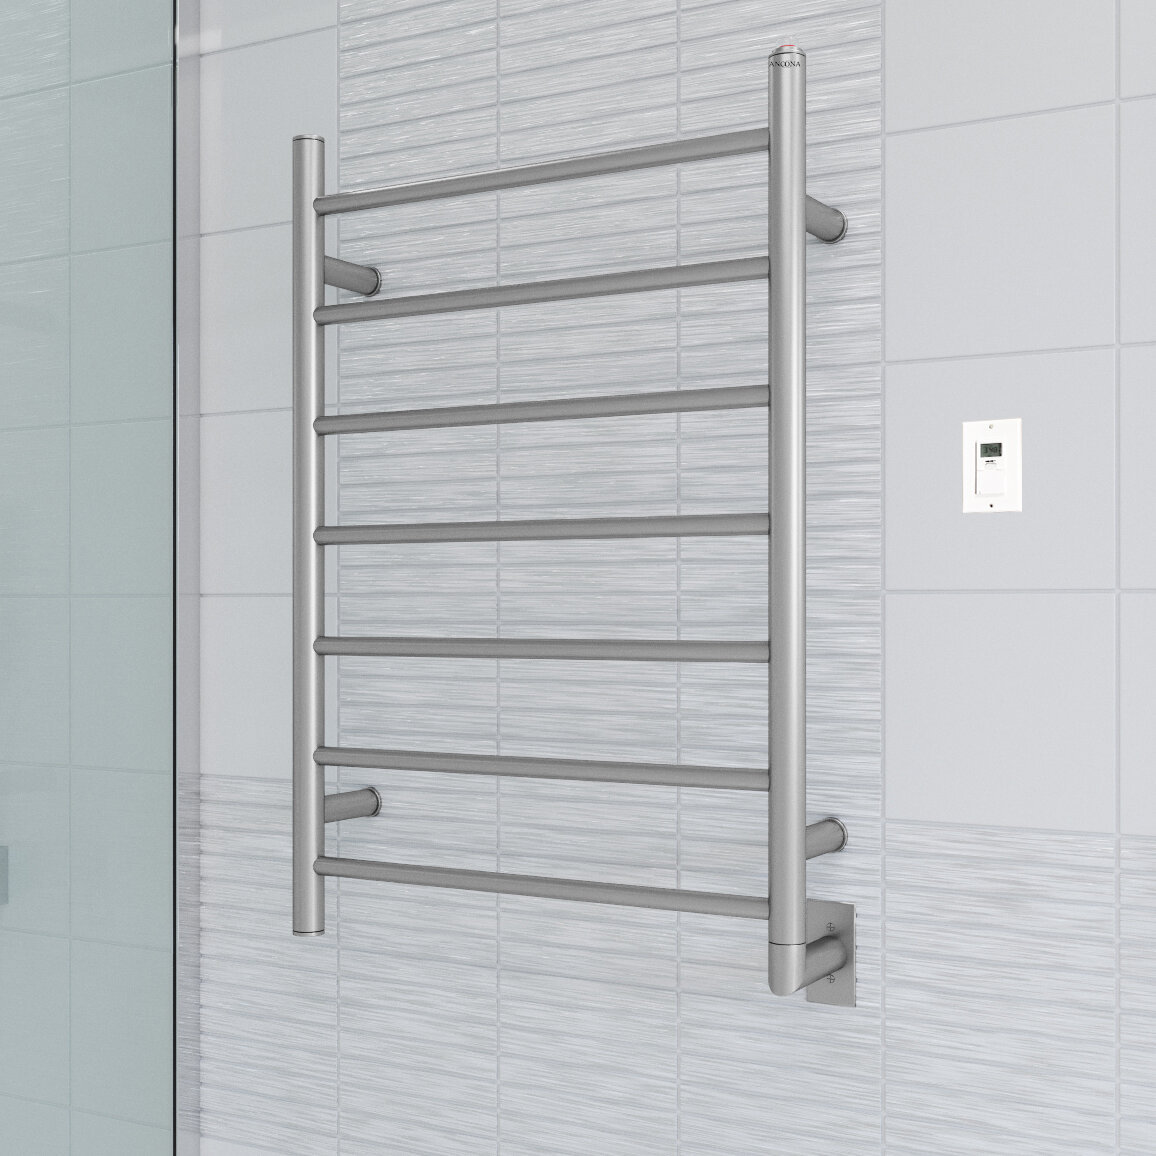 Ancona Comfort Wall Mount Electric Towel Warmer Reviews Wiring Diagram